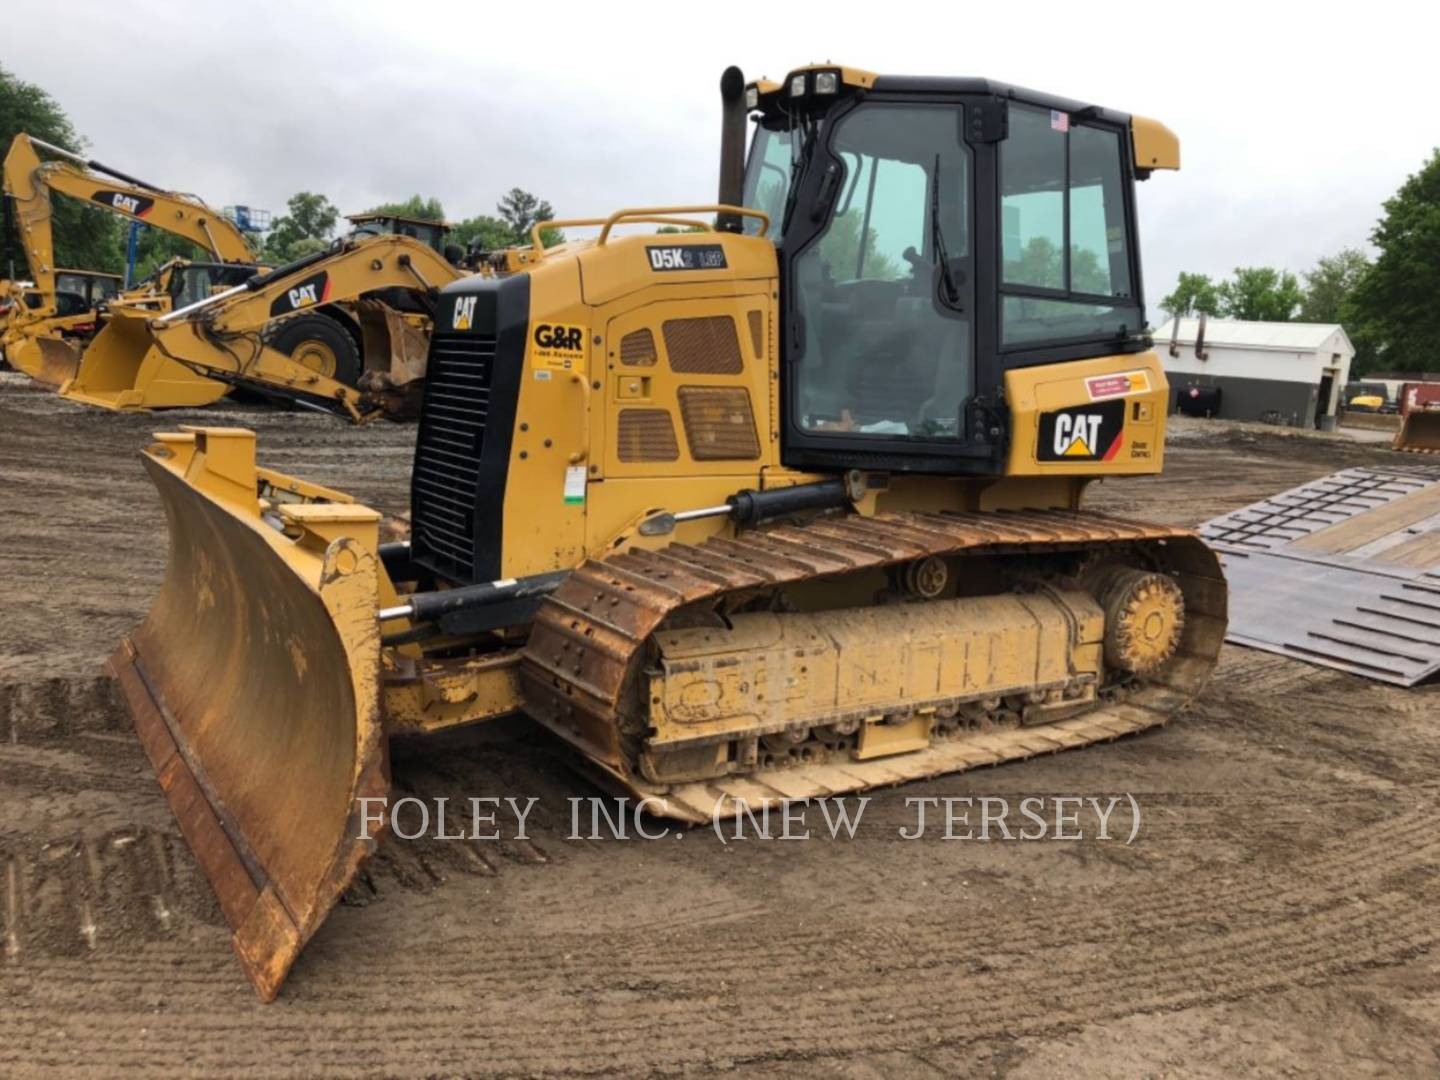 Used Dozers for Sale in NJ, PA, DE and Staten Island | Foley